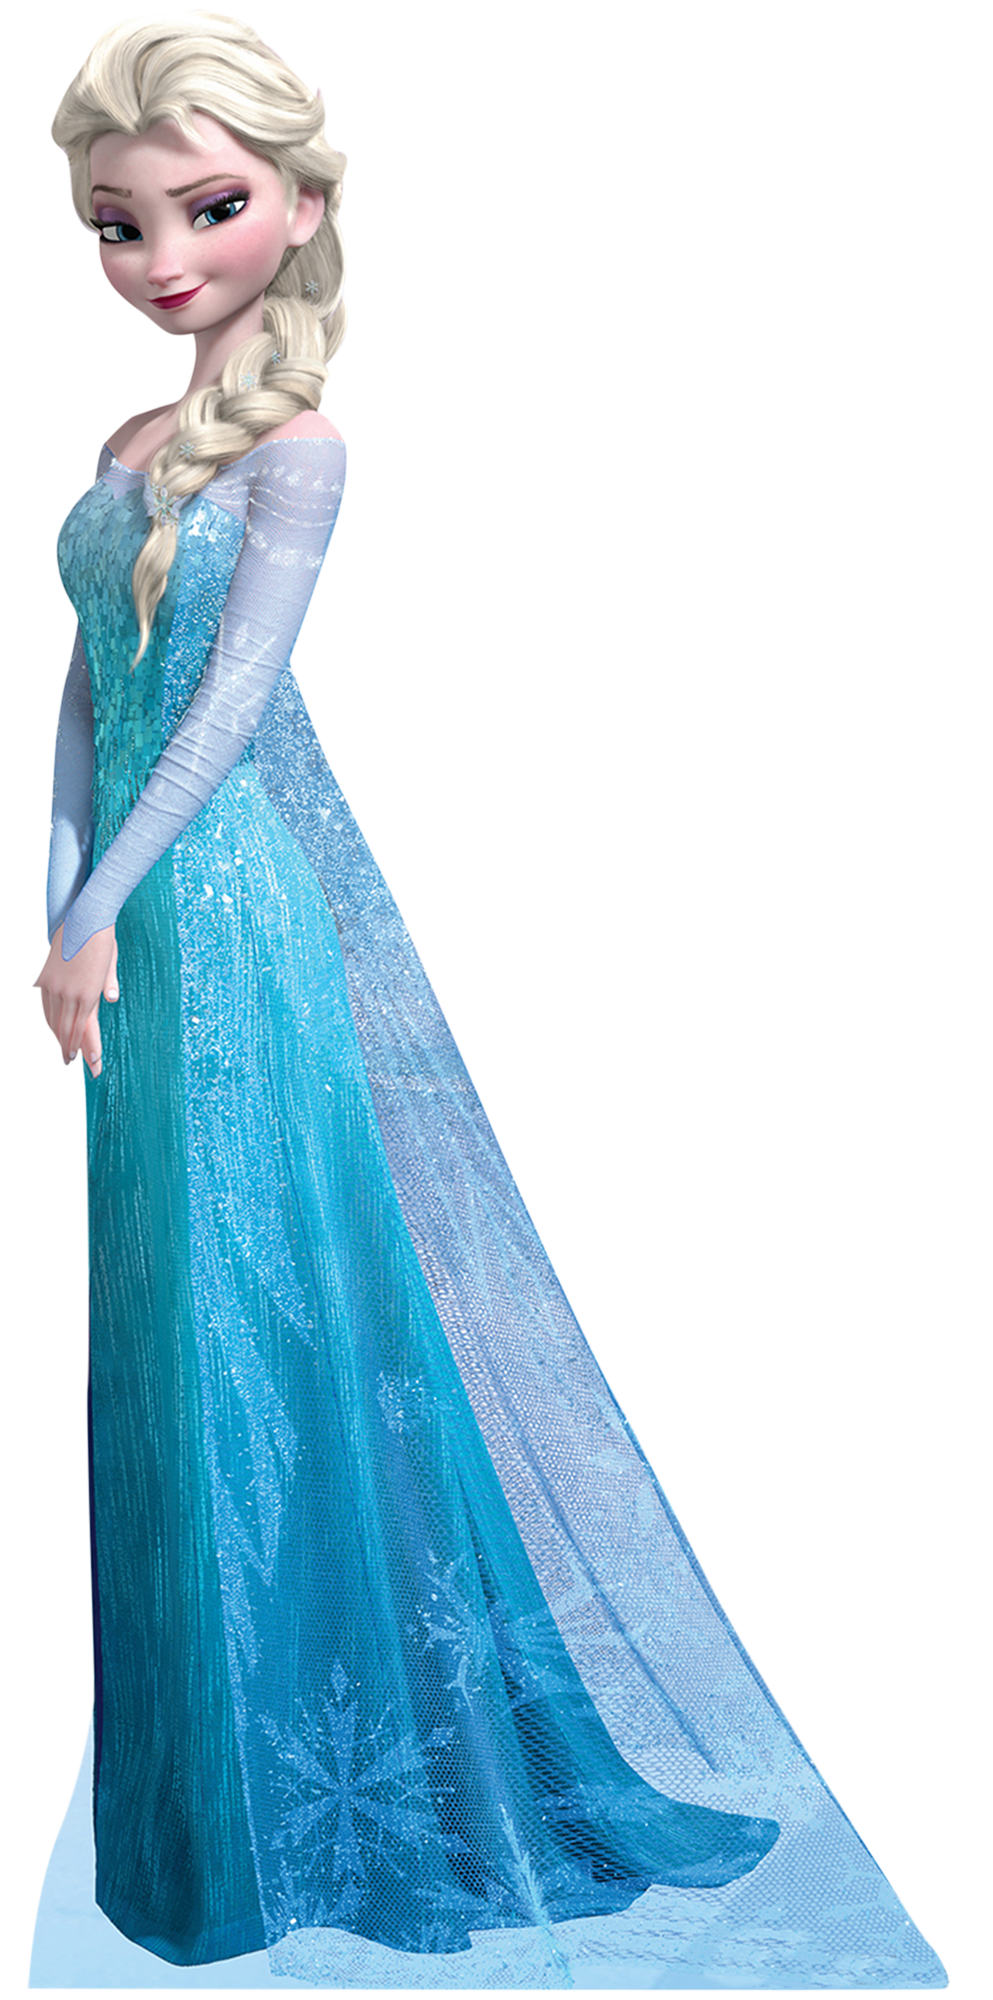 Frozen Free Download PNG